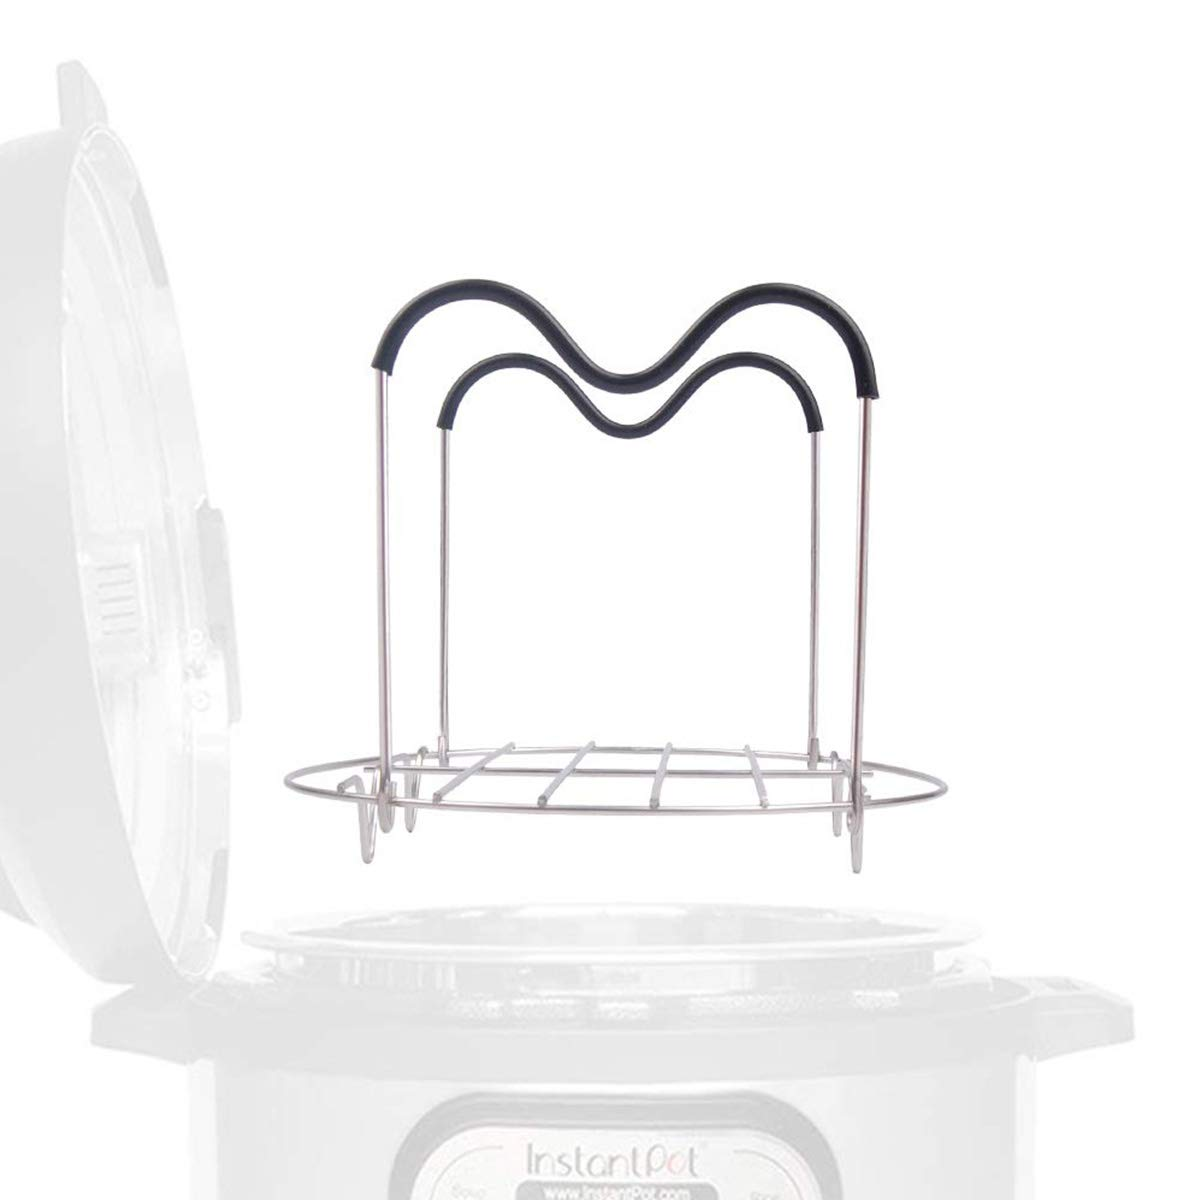 Steamer Rack Trivet with Handles for Instant Pot 6 QT 8 QT and other Electric Pressure Cookers Instant Pot accessories